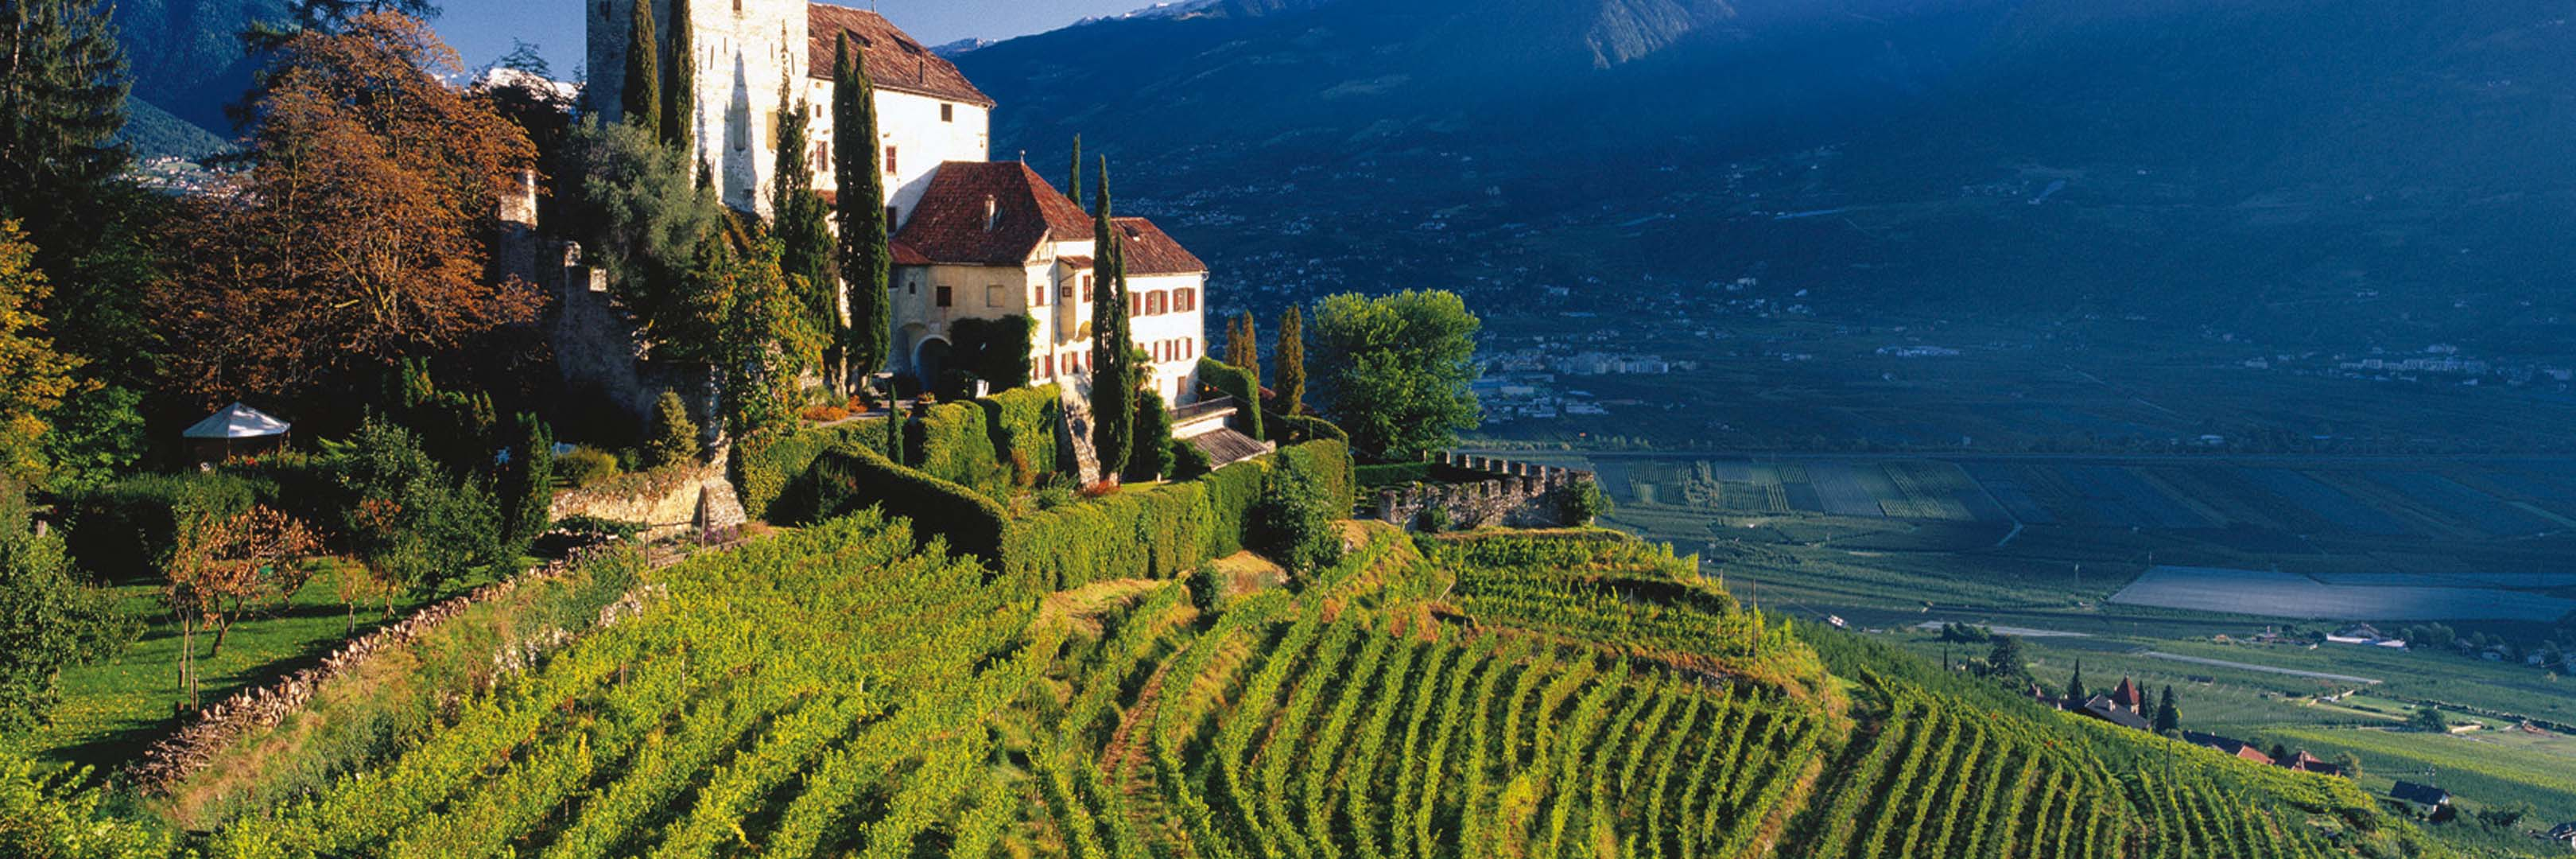 Wines from Italy - Buy Italian wines in the Philippines